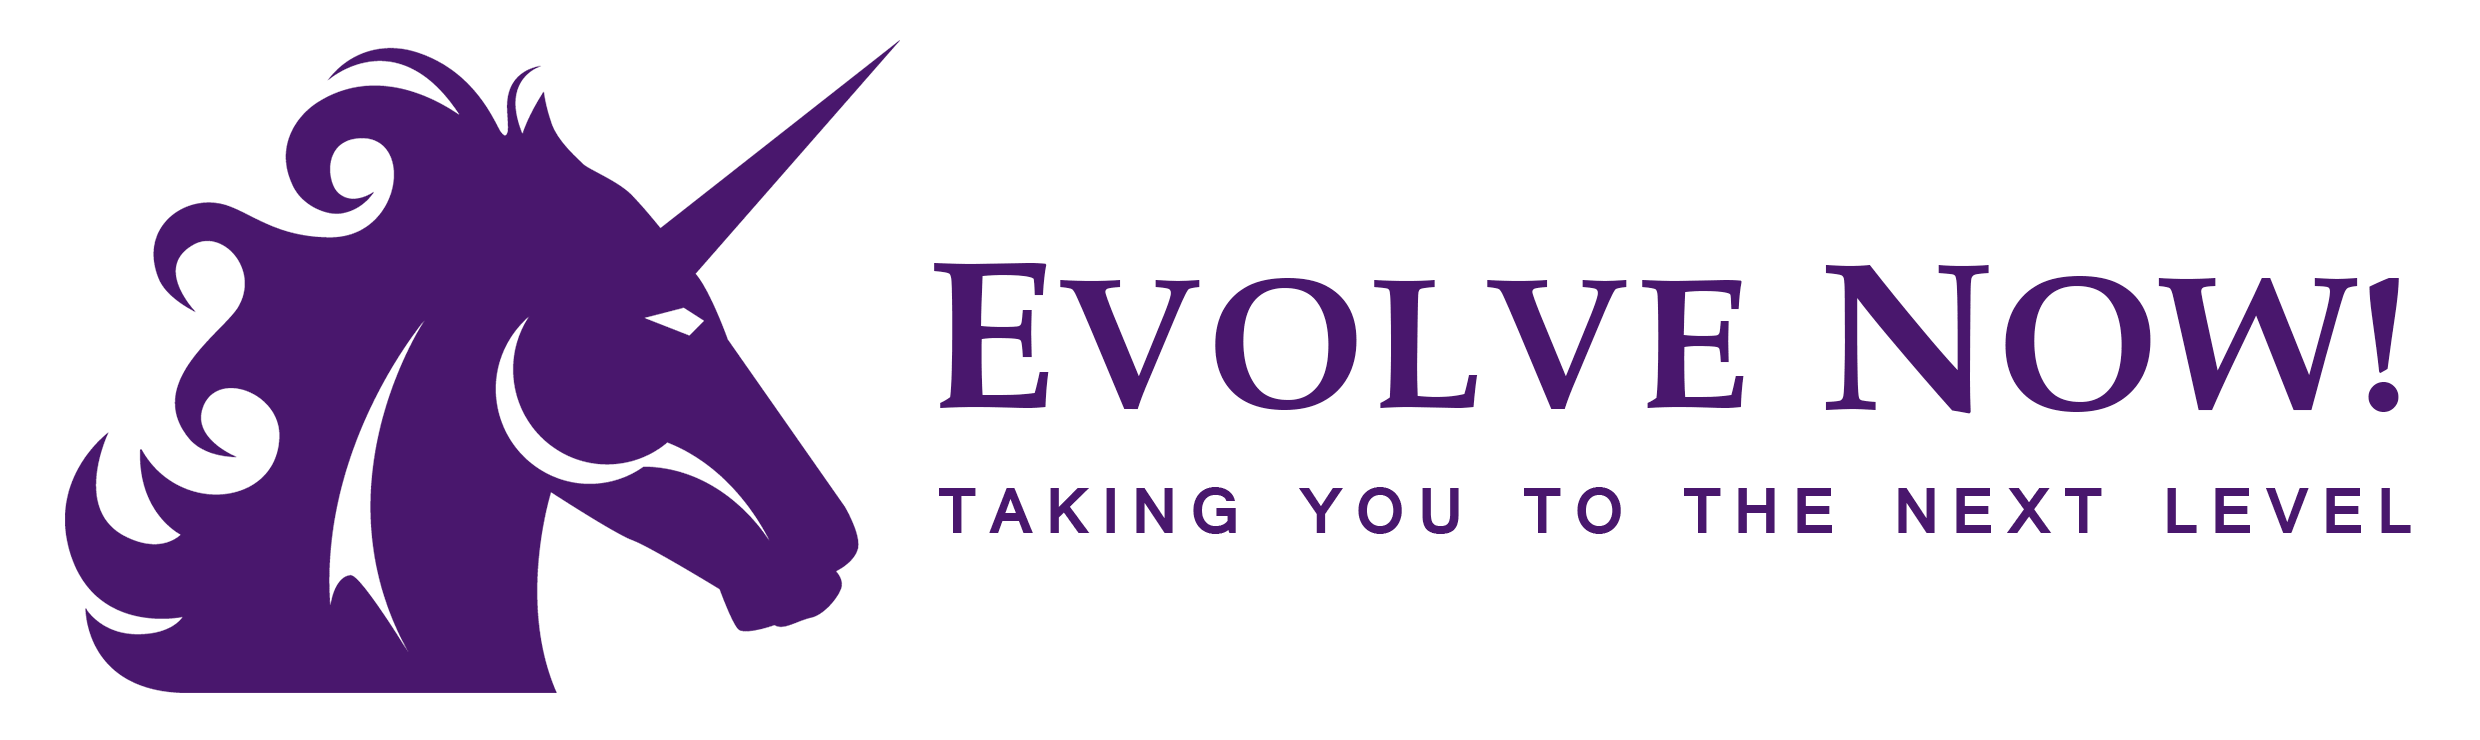 Evolve Now Purple Logo (v2) (1)-min.png